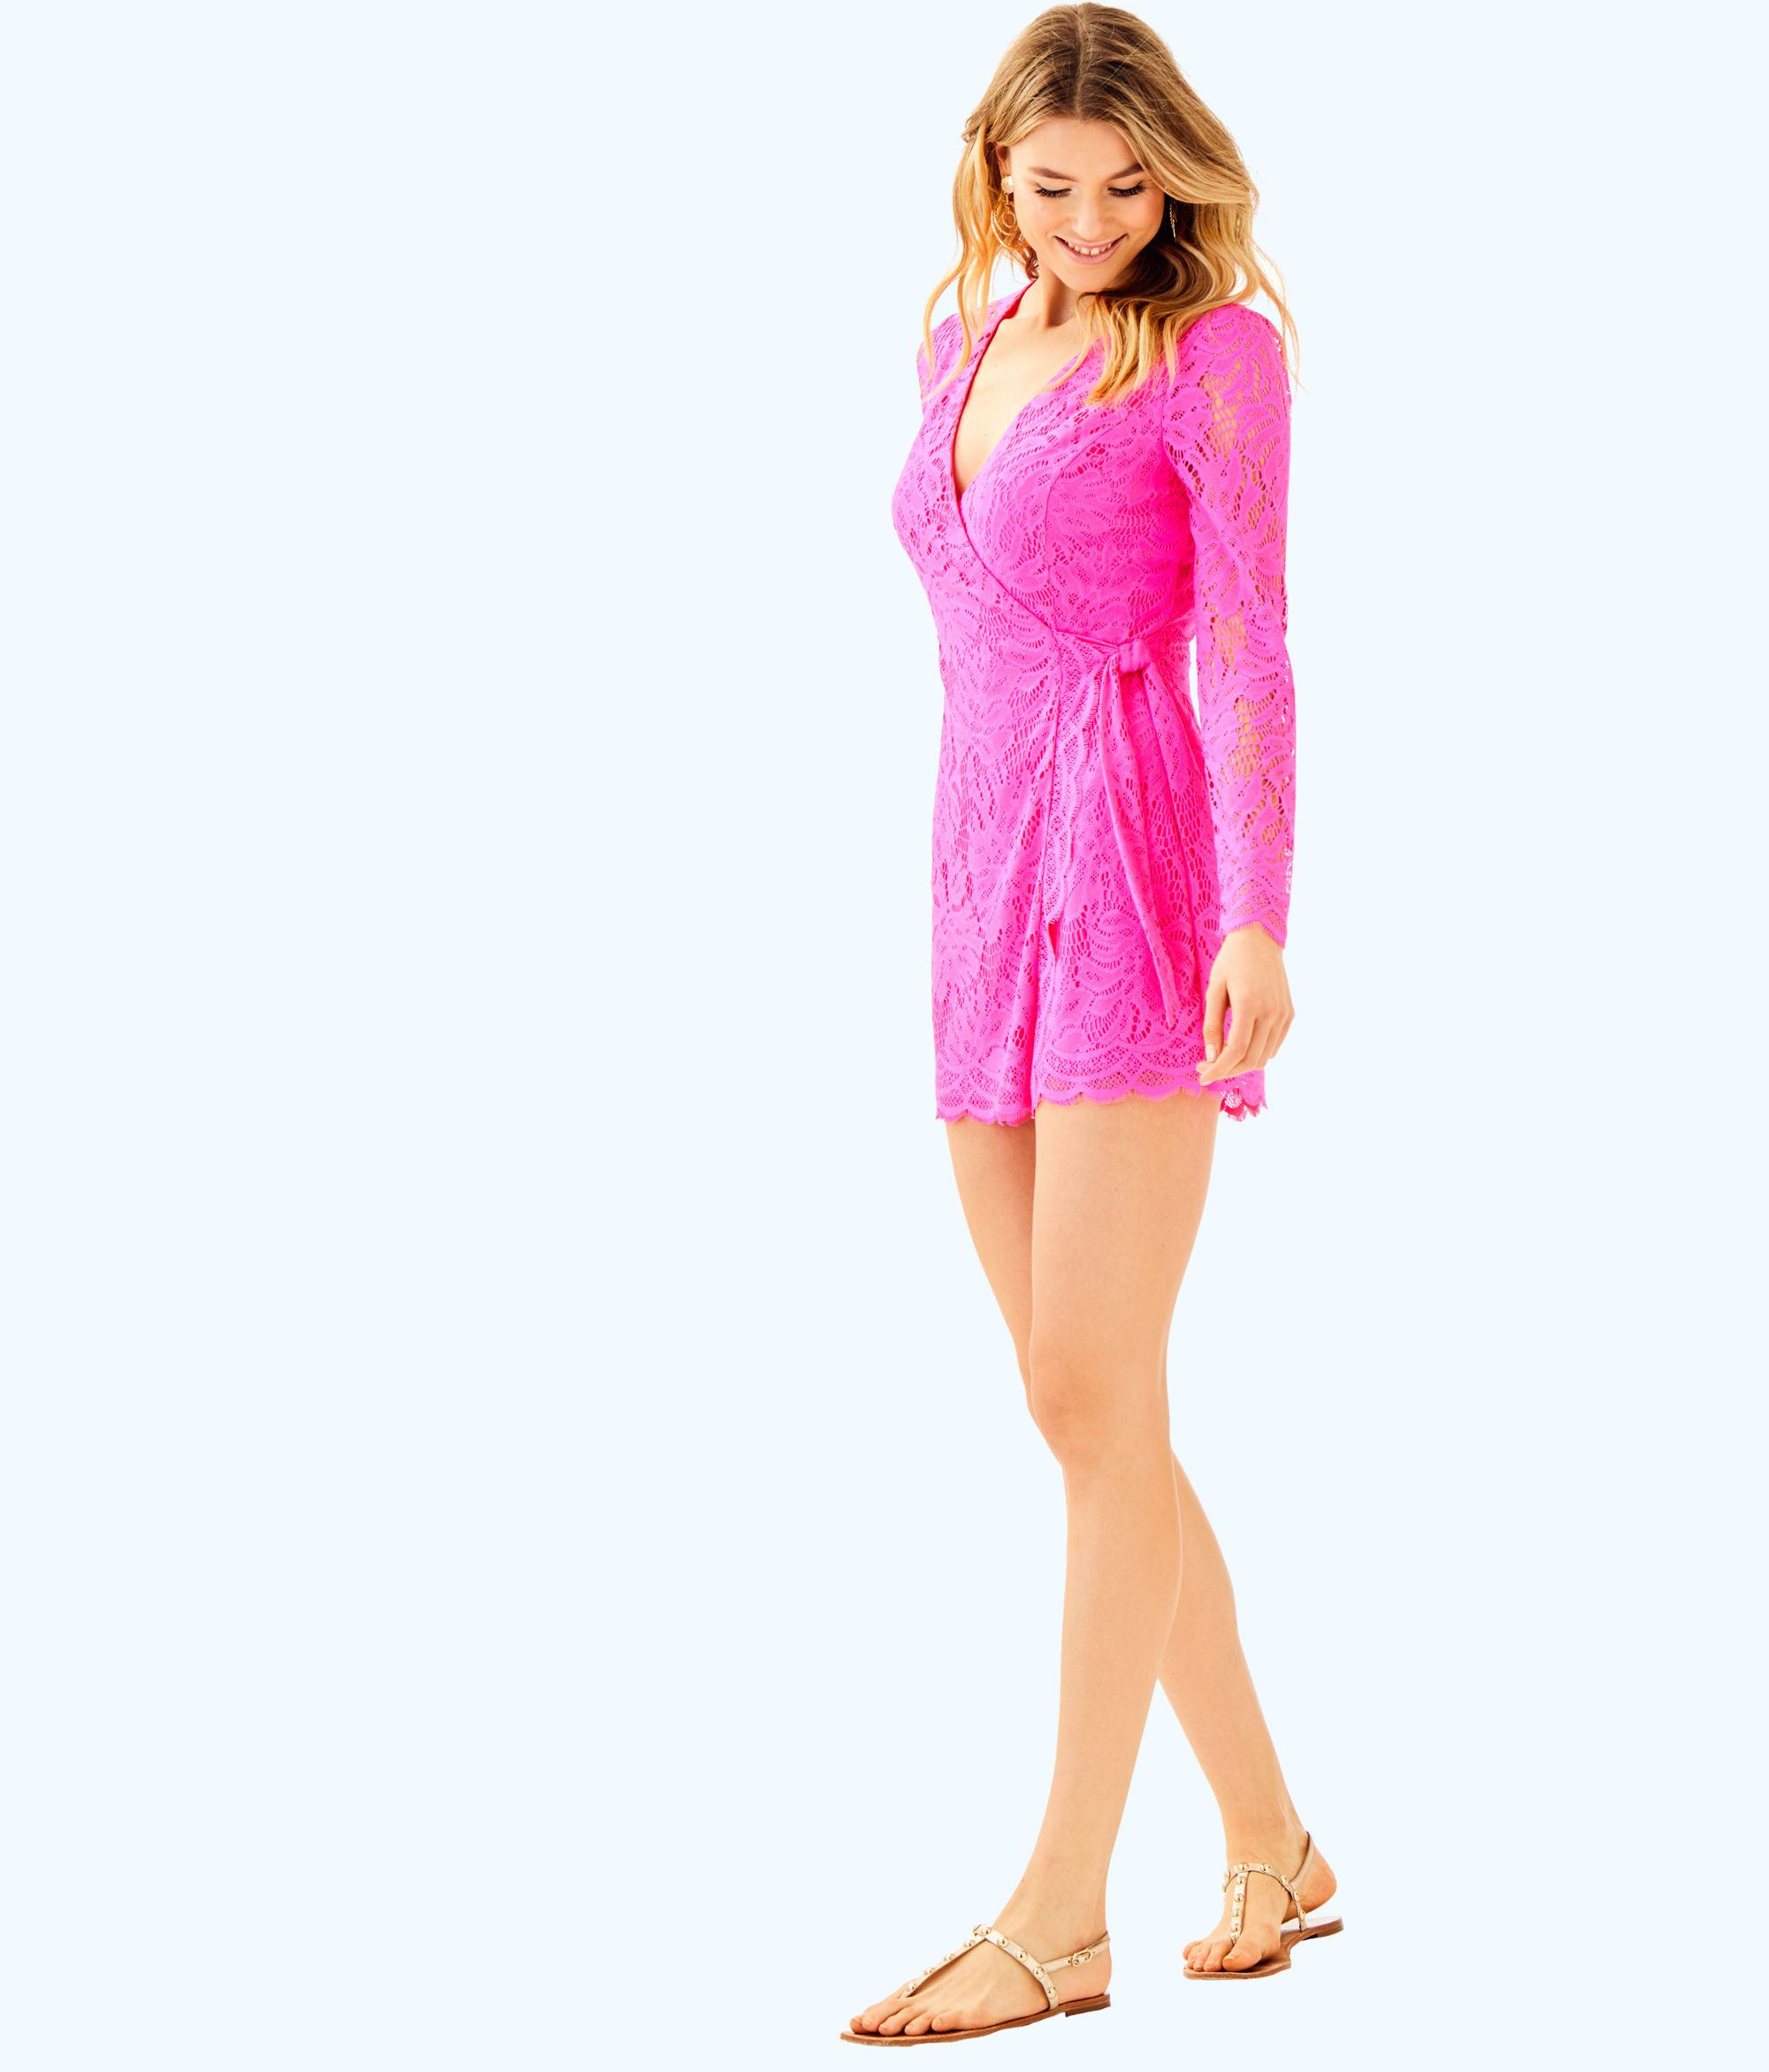 8cc703679c1fe1 Lilly Pulitzer Tiki Wrap Romper in Pink - Lyst